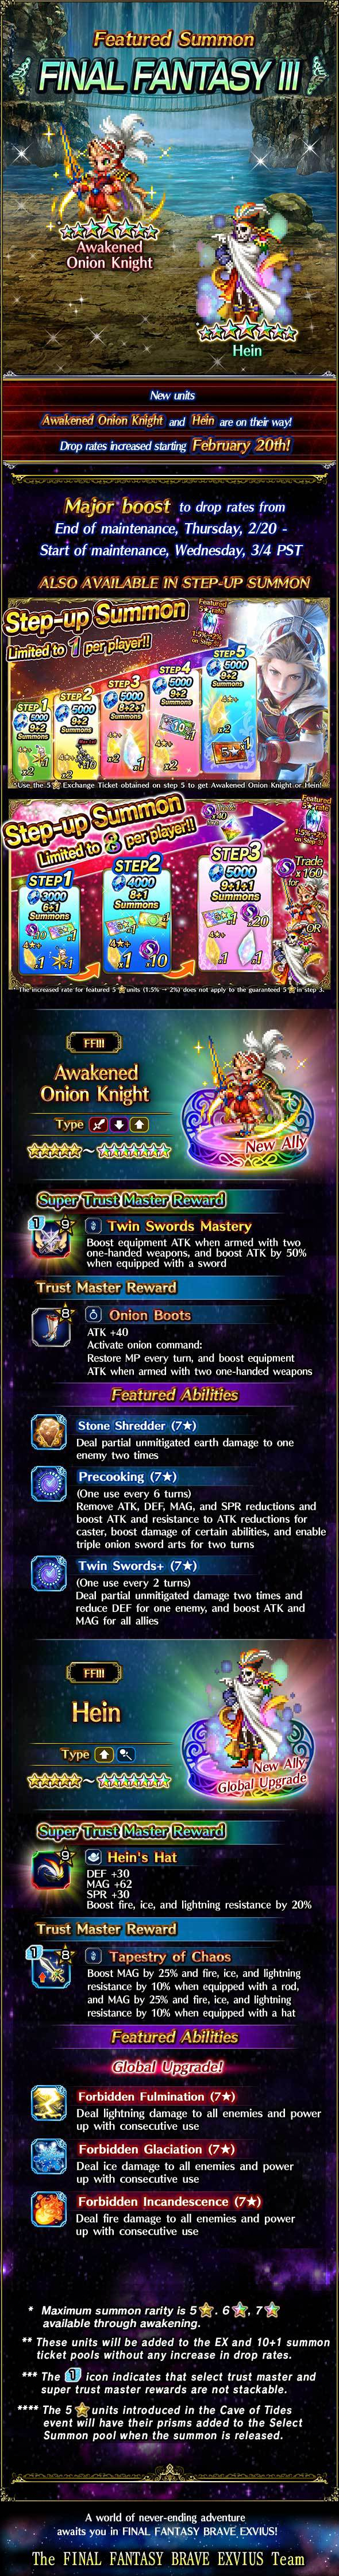 Invocations du moment, boutique d'échange et tickets 5★ garantie - FFIII (AOK/Hein) - du 20/02 au 05/03/20 20200218FFIIIFeaturedSummonAOKnightHein